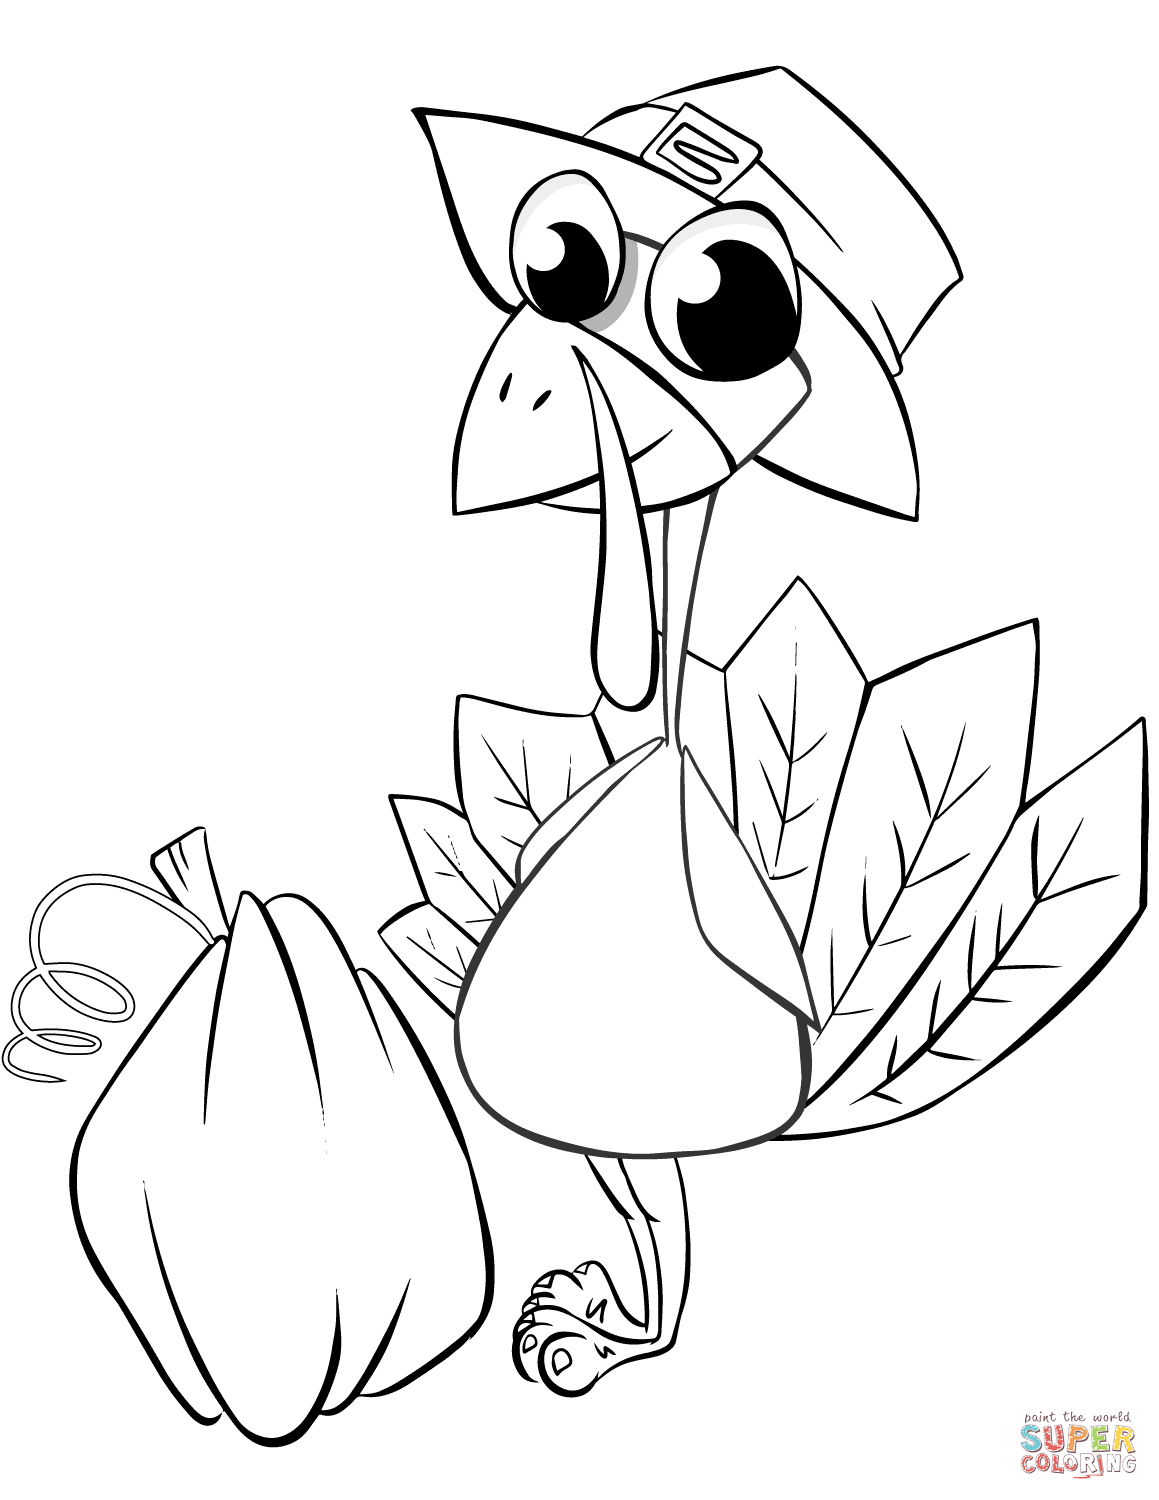 Thanksgiving Turkey With Pumpkin Coloring Page | Free Printable - Free Printable Pictures Of Turkeys To Color